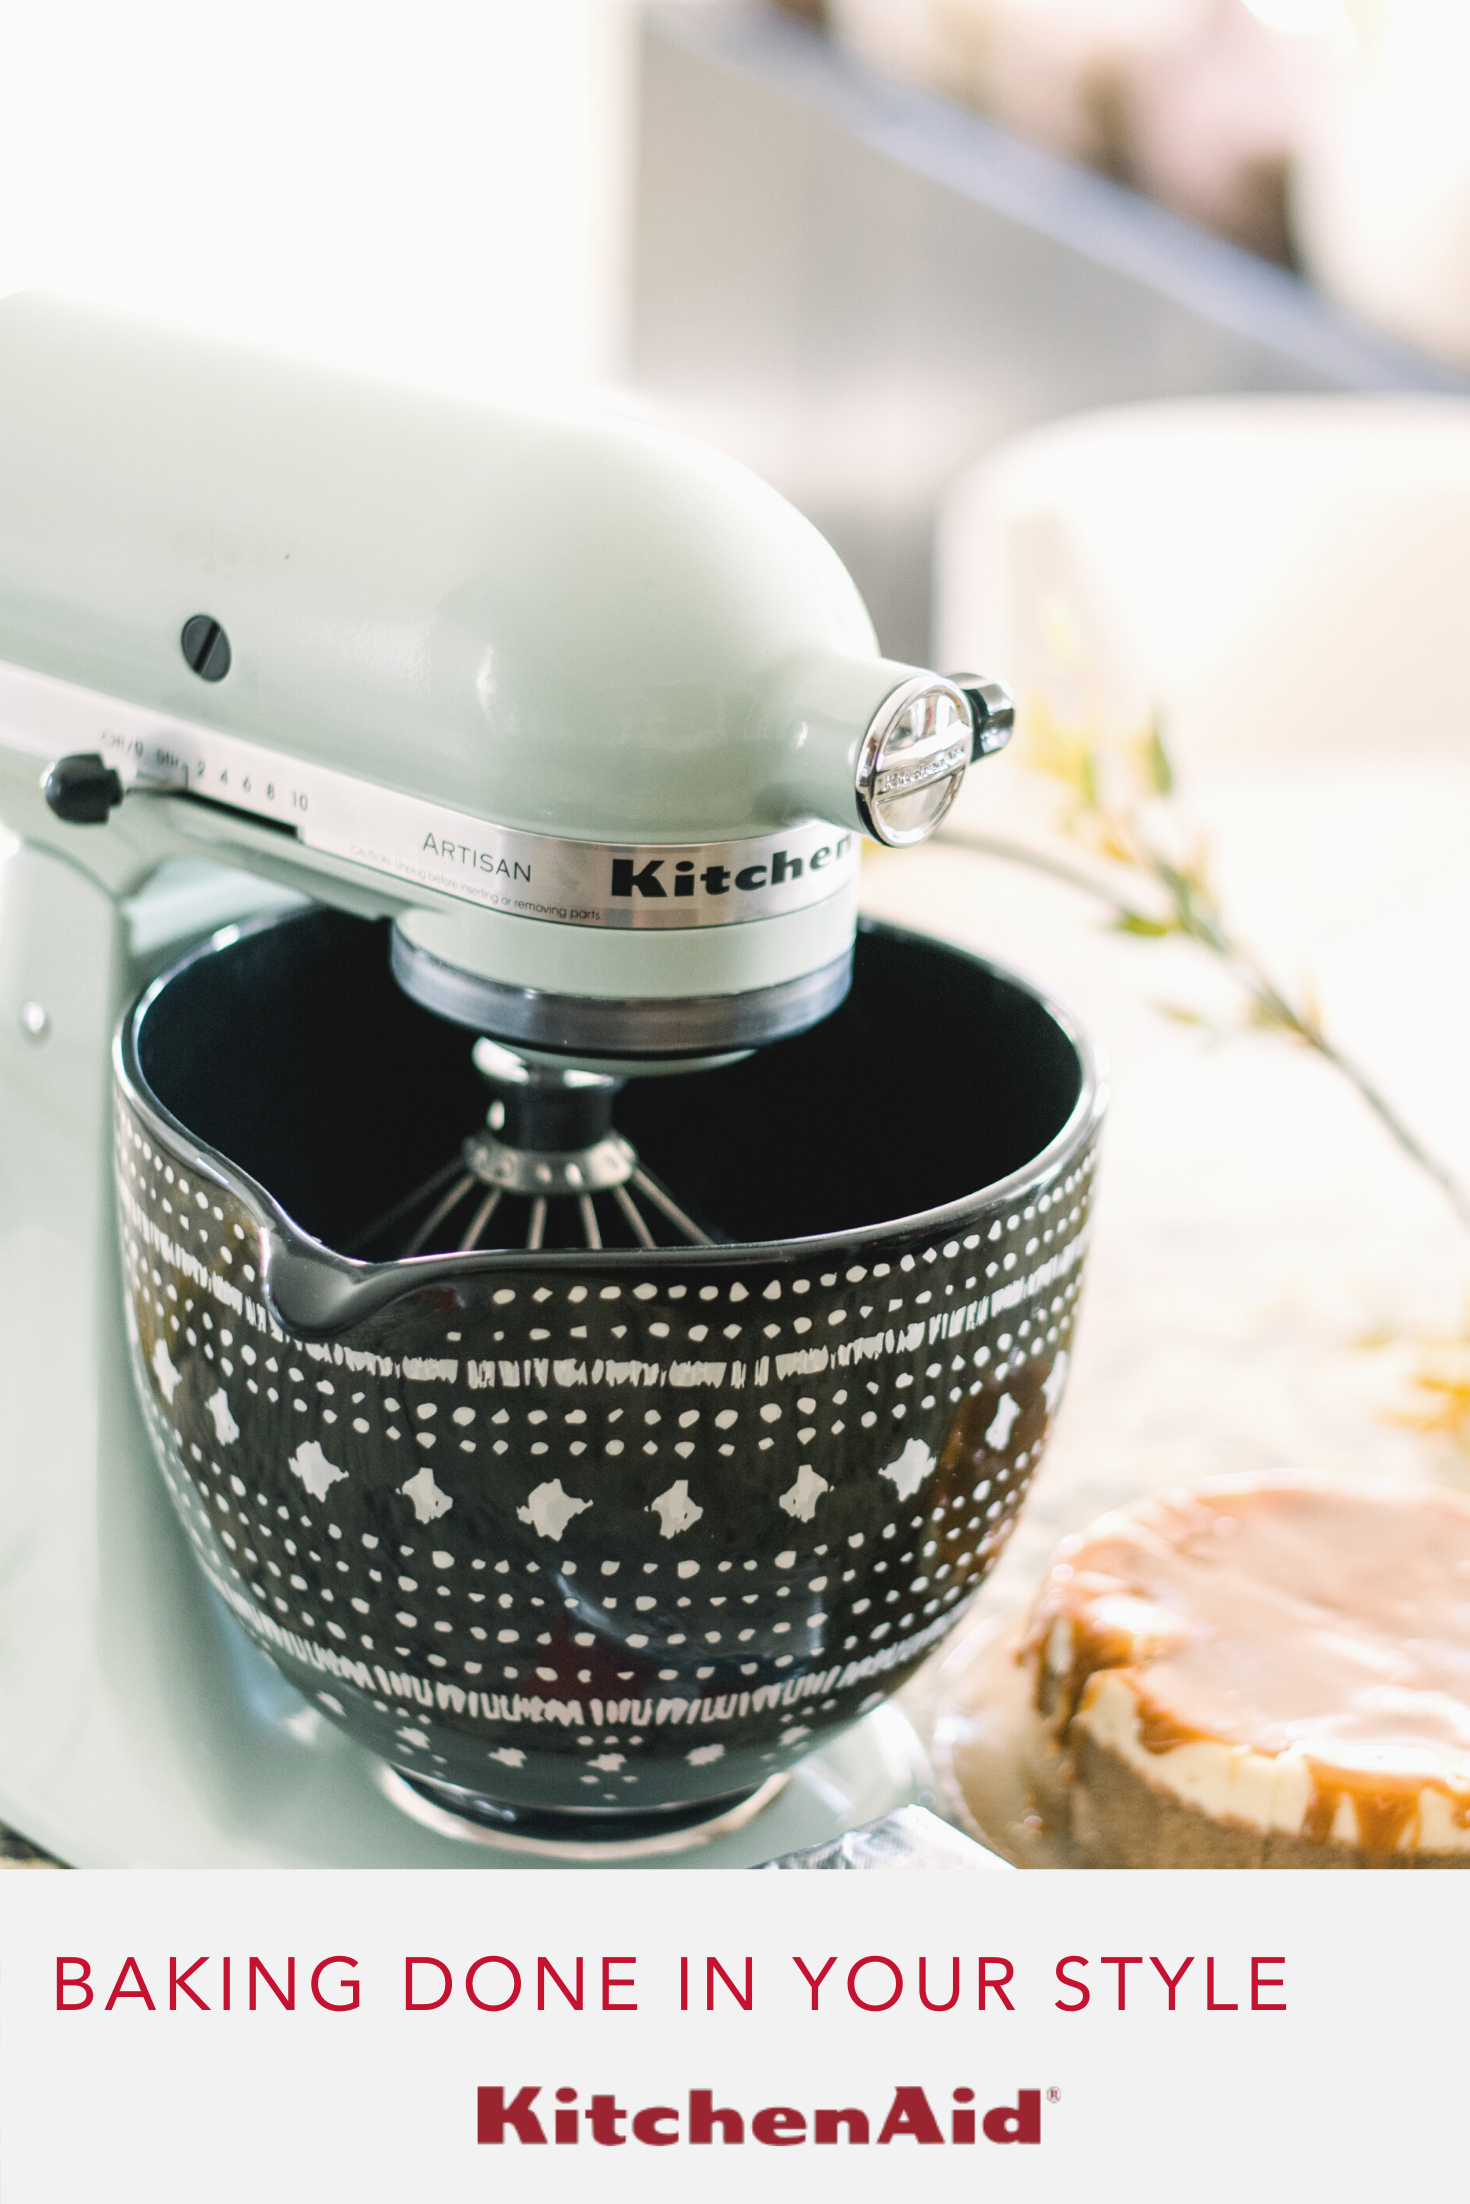 Every Maker Likes To Bake In Their Own Style Use The Kitchenaid Stand Mixer To Personalize Kitchen Aid Kitchen Aid Mixer Decal Kitchenaid Artisan Stand Mixer